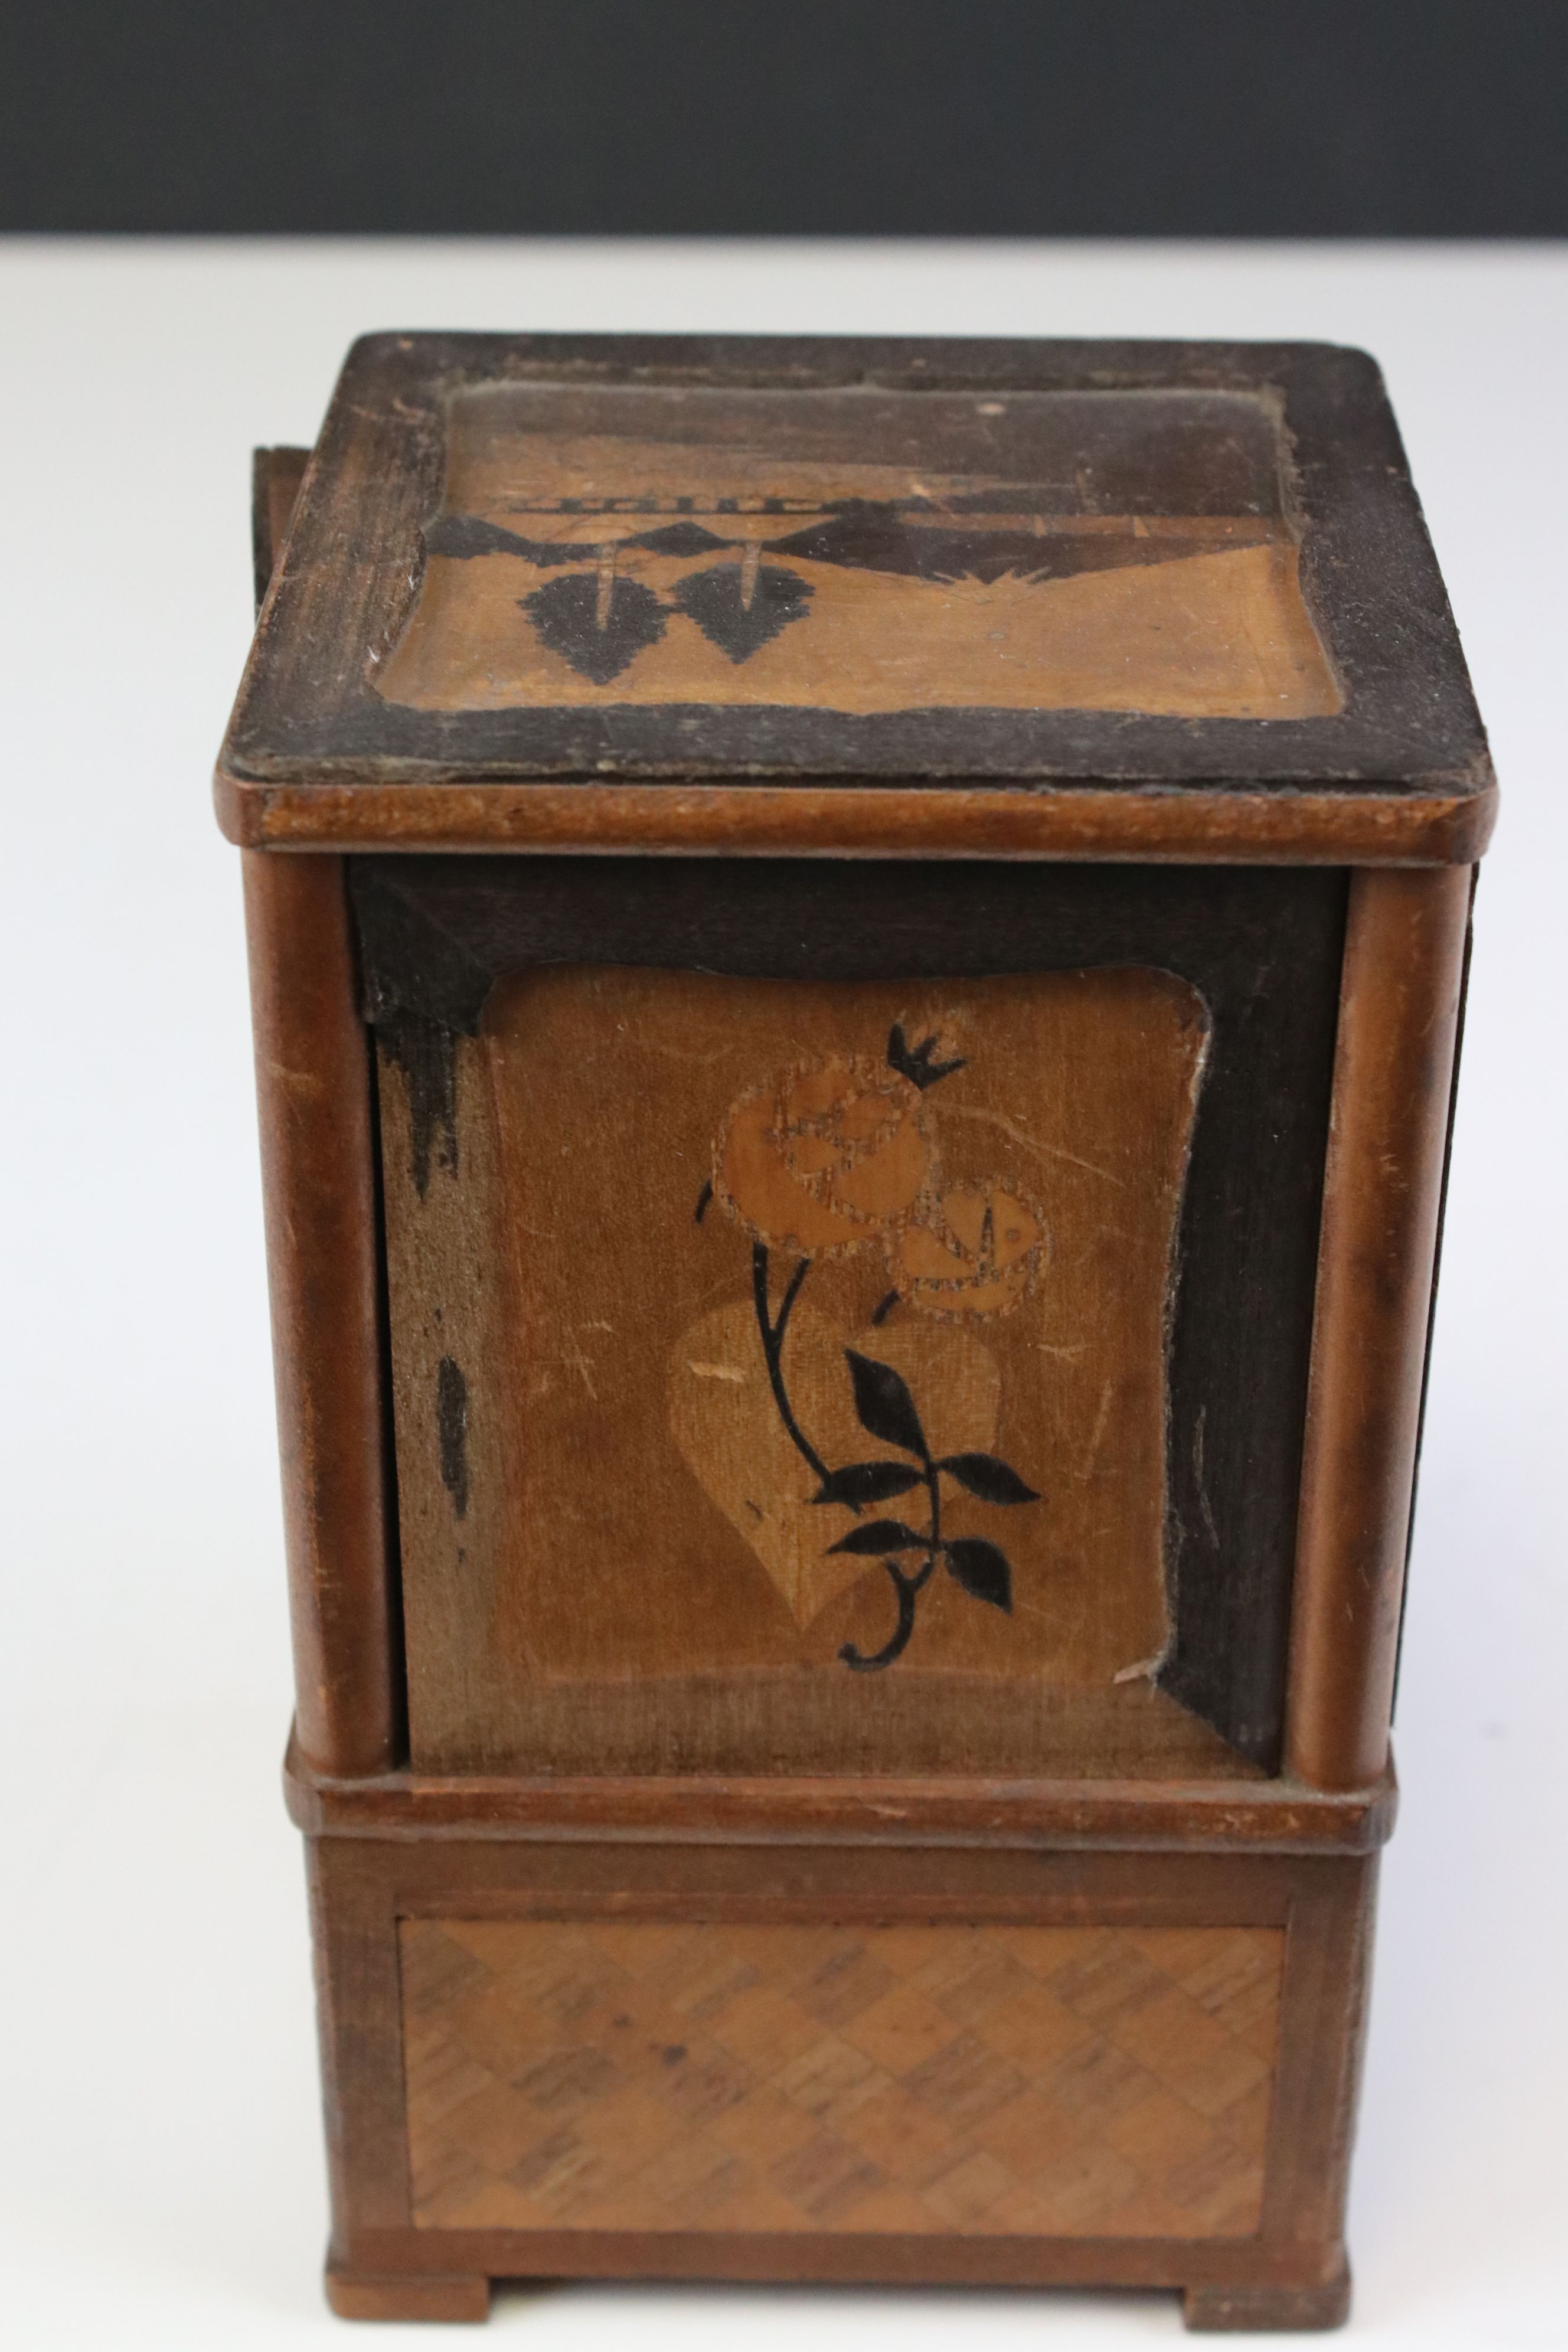 Japanese Wooden Inlaid Table Cigarette Dispenser, decorated with scenes of Mount Fuji, Flowers and - Image 3 of 5